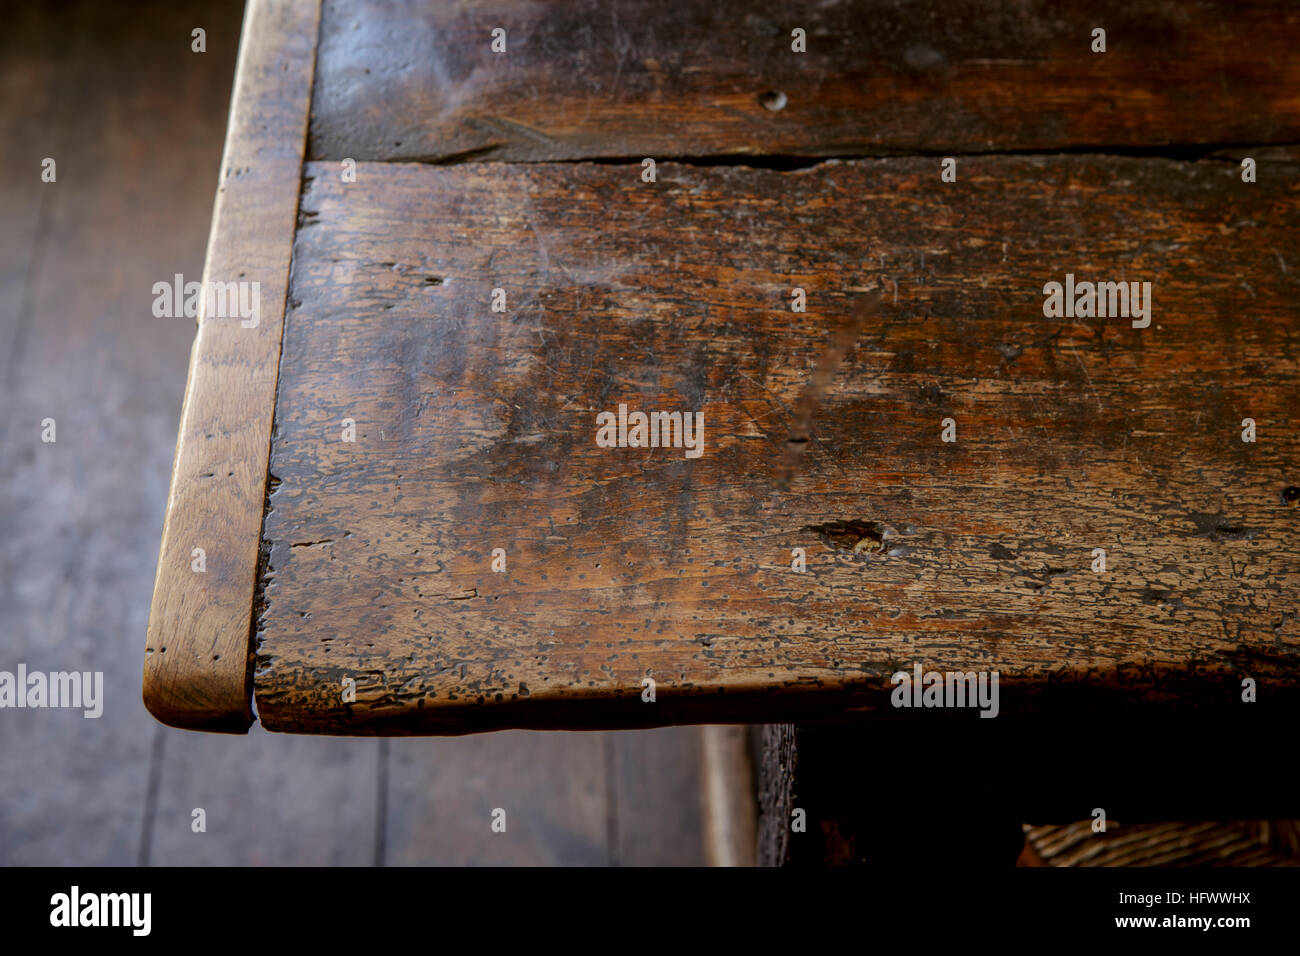 Old Pub or public house, detail of wooden table with knots and patina - Stock Image